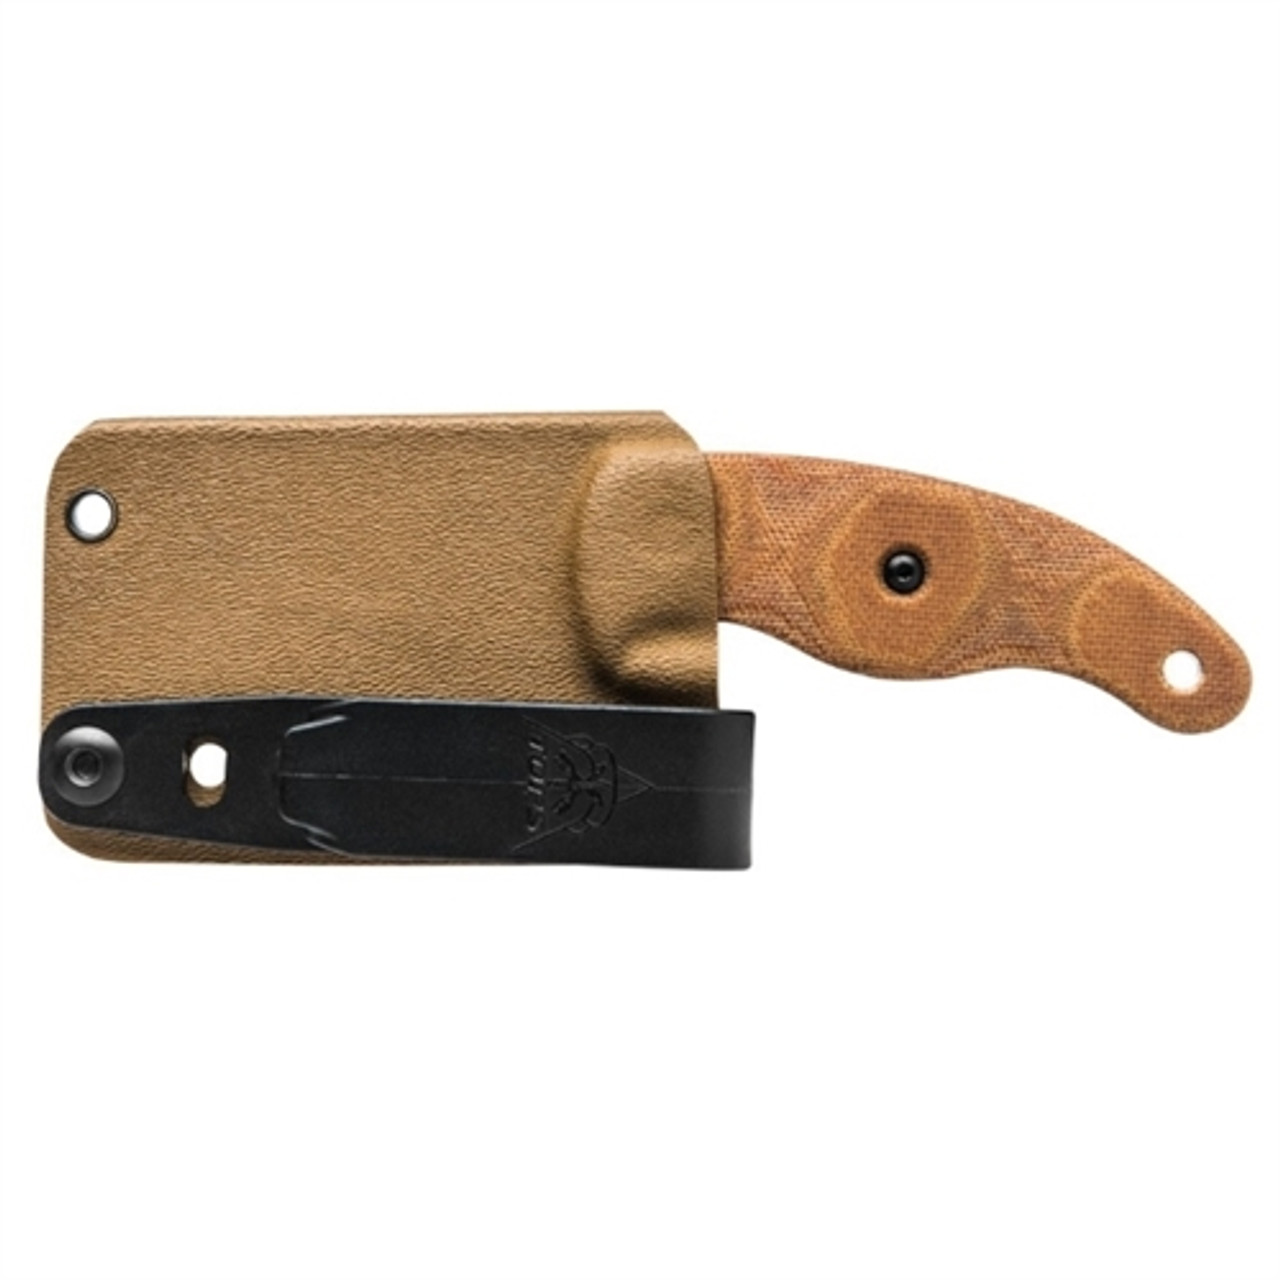 TOPS LILB-01 Tan Little Bugger Wharncliffe Micarta Fixed Blade Knife, 1095 Carbon Tumbled Blade